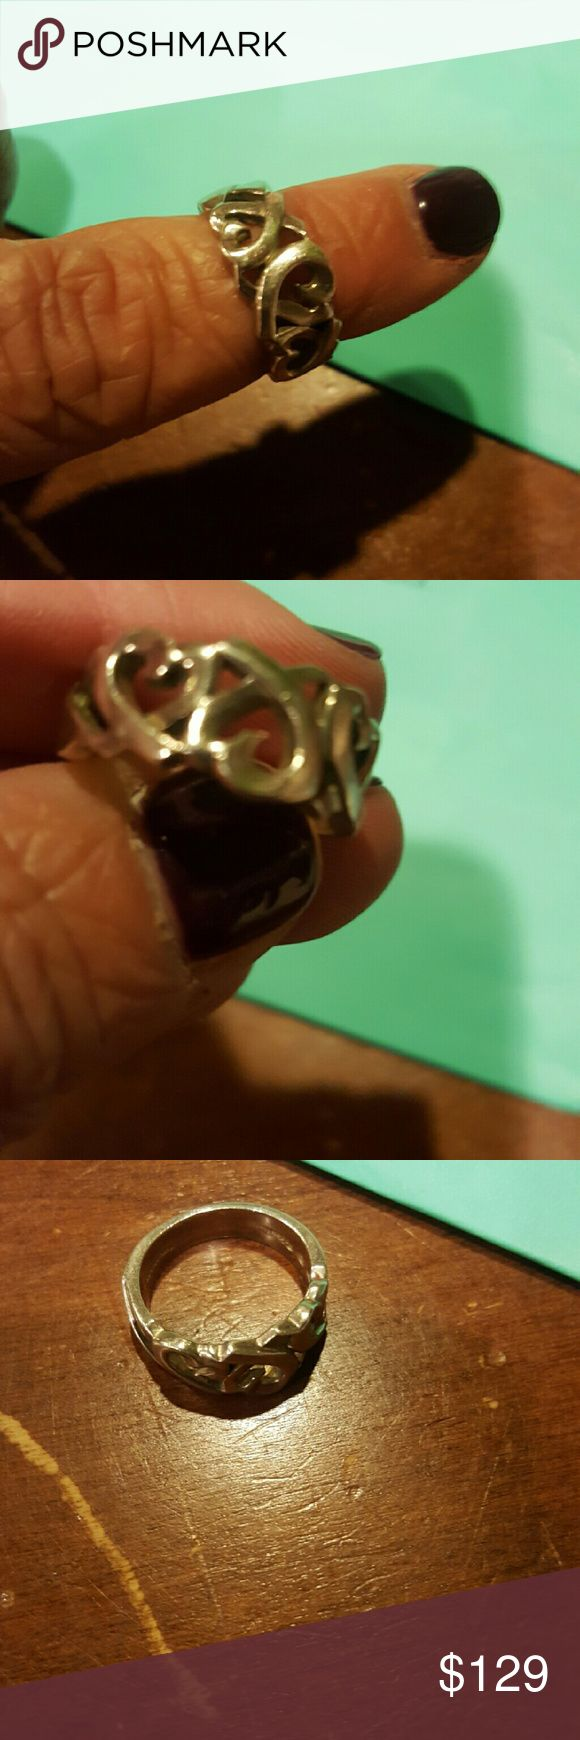 Tiffany sz 7 sterling silver Paloma Picasso ring Paloma Picasso  ring by Tiffany and Company. Excellent condition Loving Heart sz 7 Tiffany & Co. Jewelry Rings